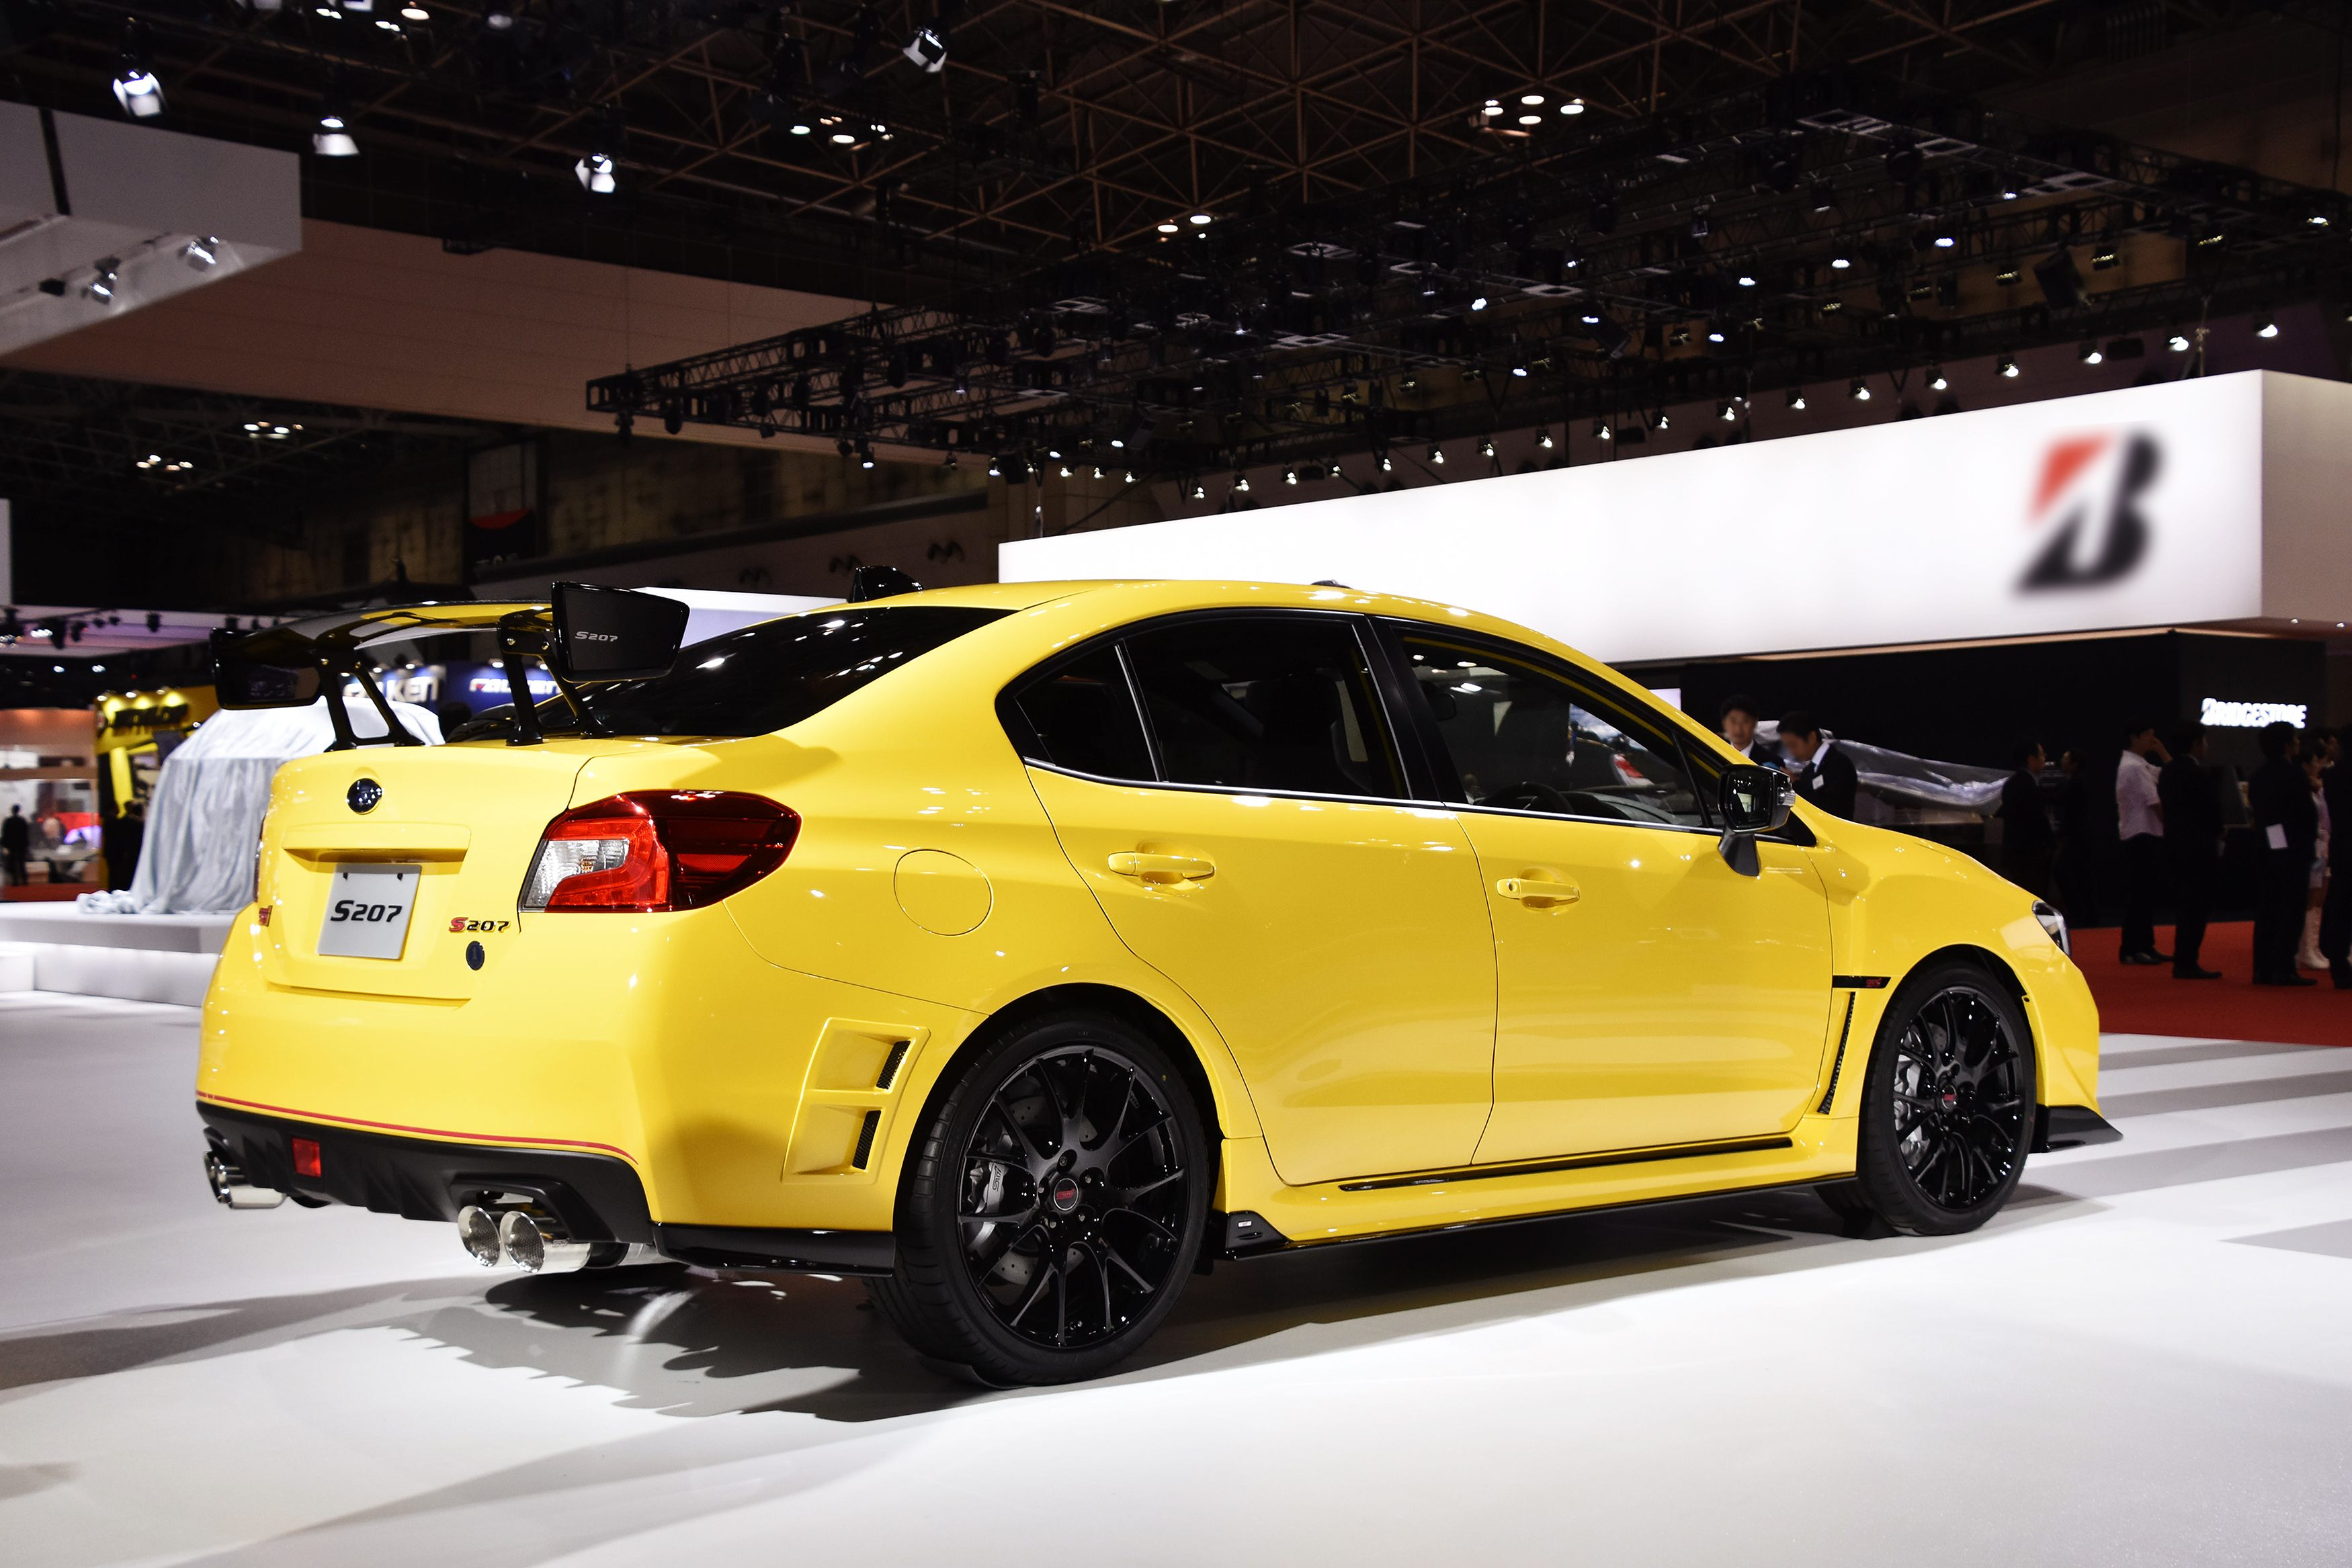 Limited edition subaru wrx sti s207 to be released in japan motrface